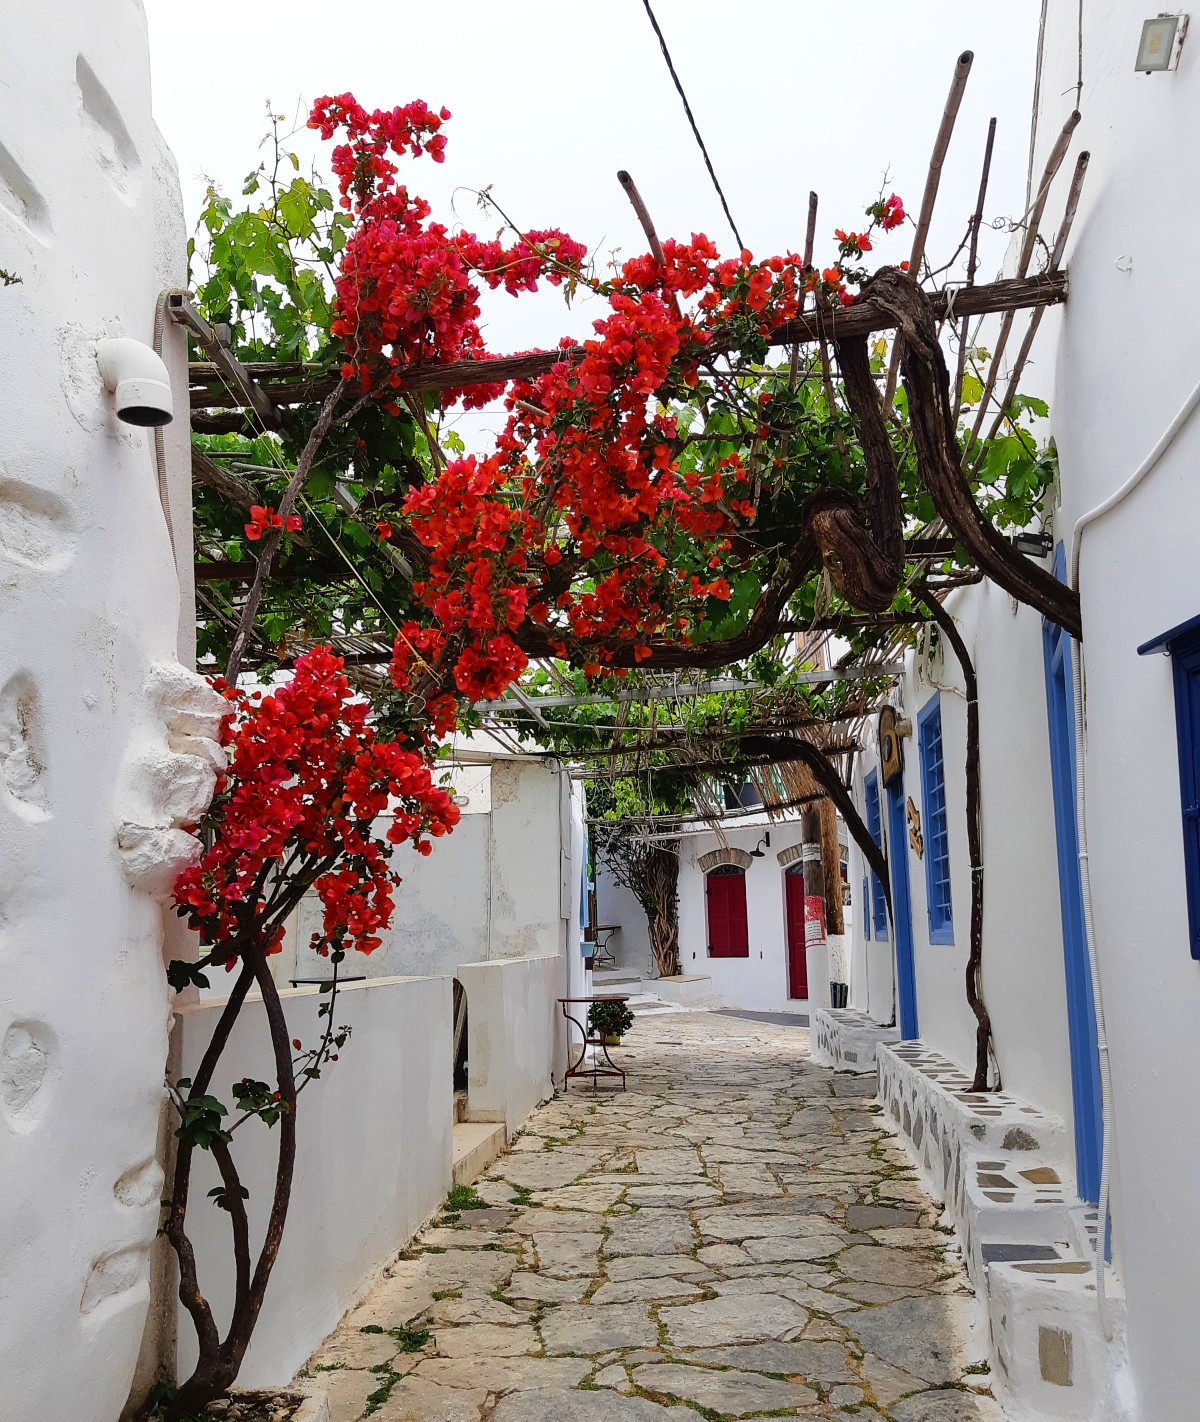 Visit the main town in Amorgos